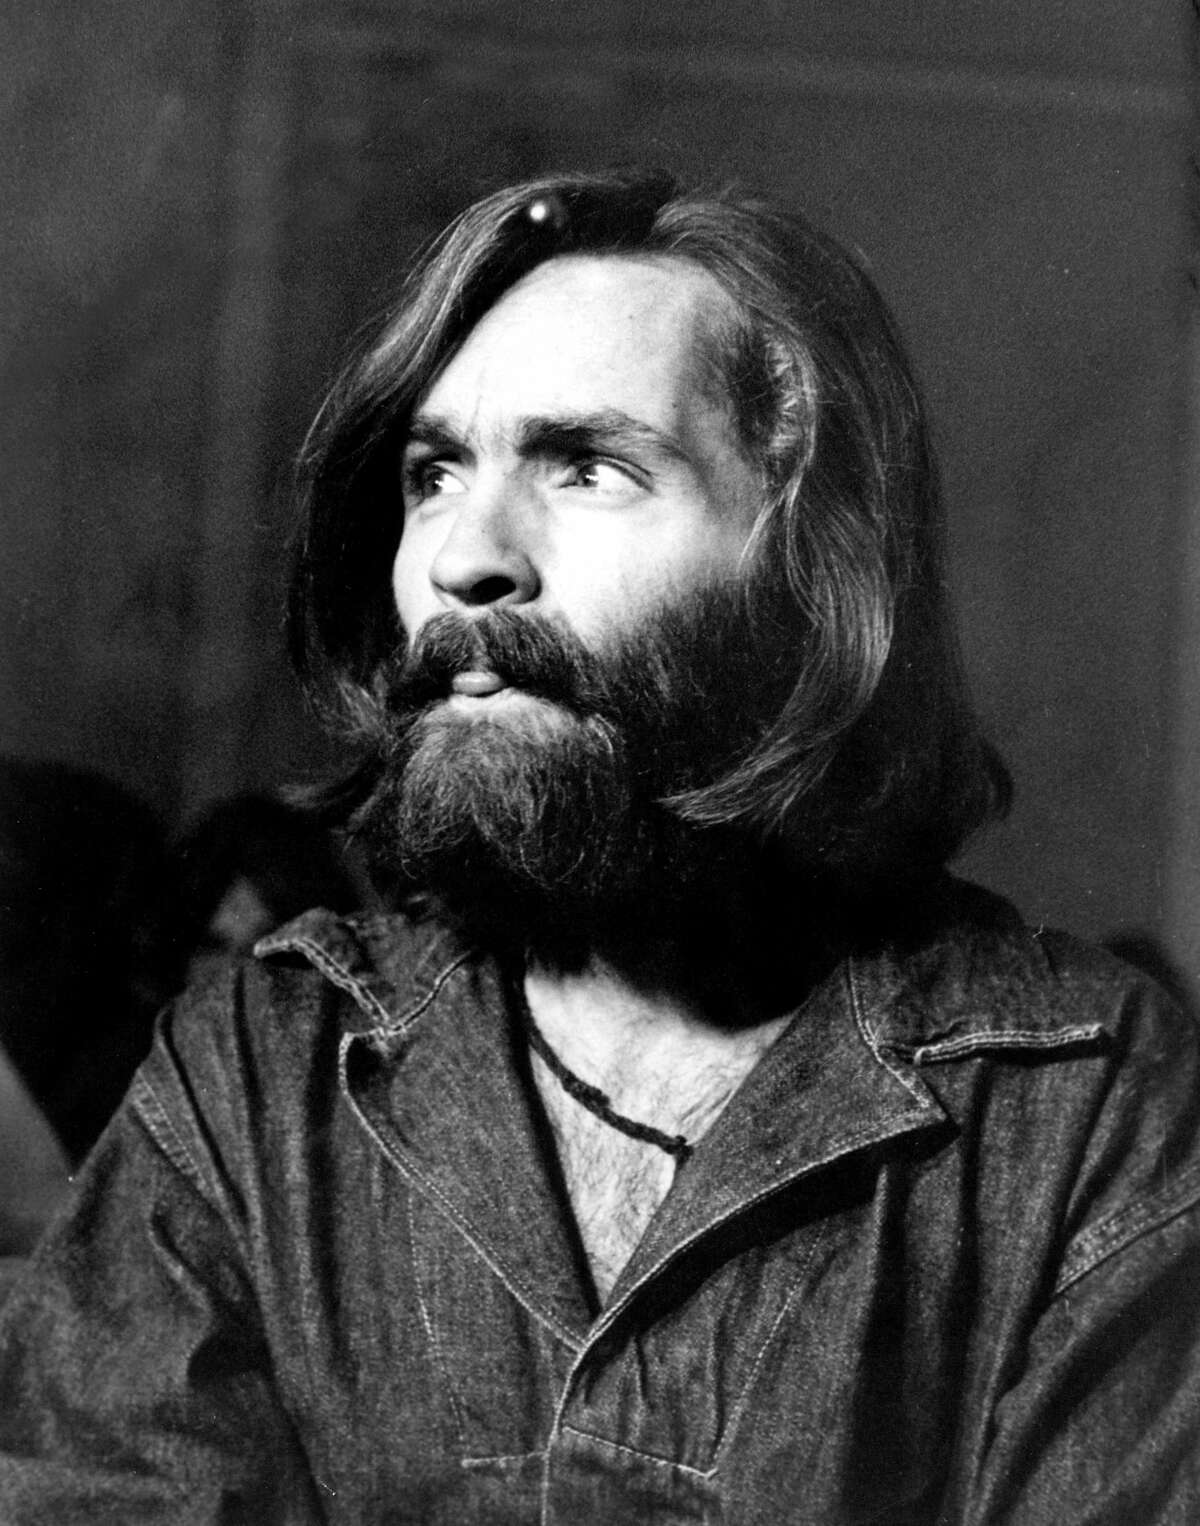 Charles Manson in a portrait taken in 1970. In April of 1971, he was sentenced to death for his role in the Tate-LaBianca murders. The next year, the sentence was changed to life in prison after the death penalty was abolished in California.